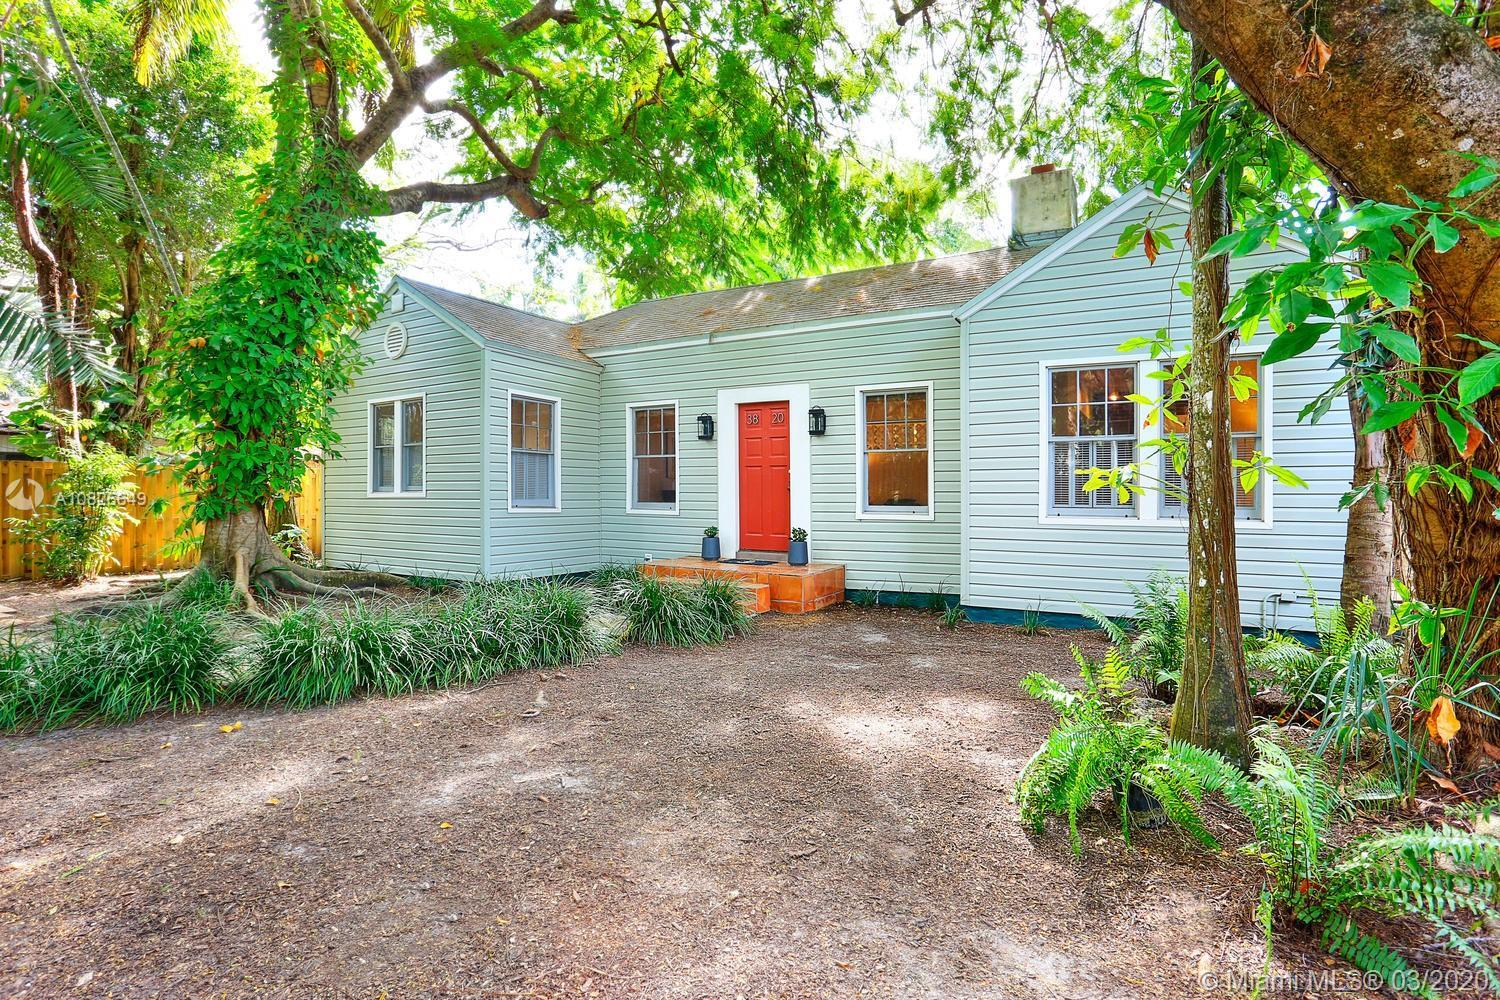 Quintessential Grove bungalow + 2-story guest house, tucked behind a privacy fence & surrounded by a